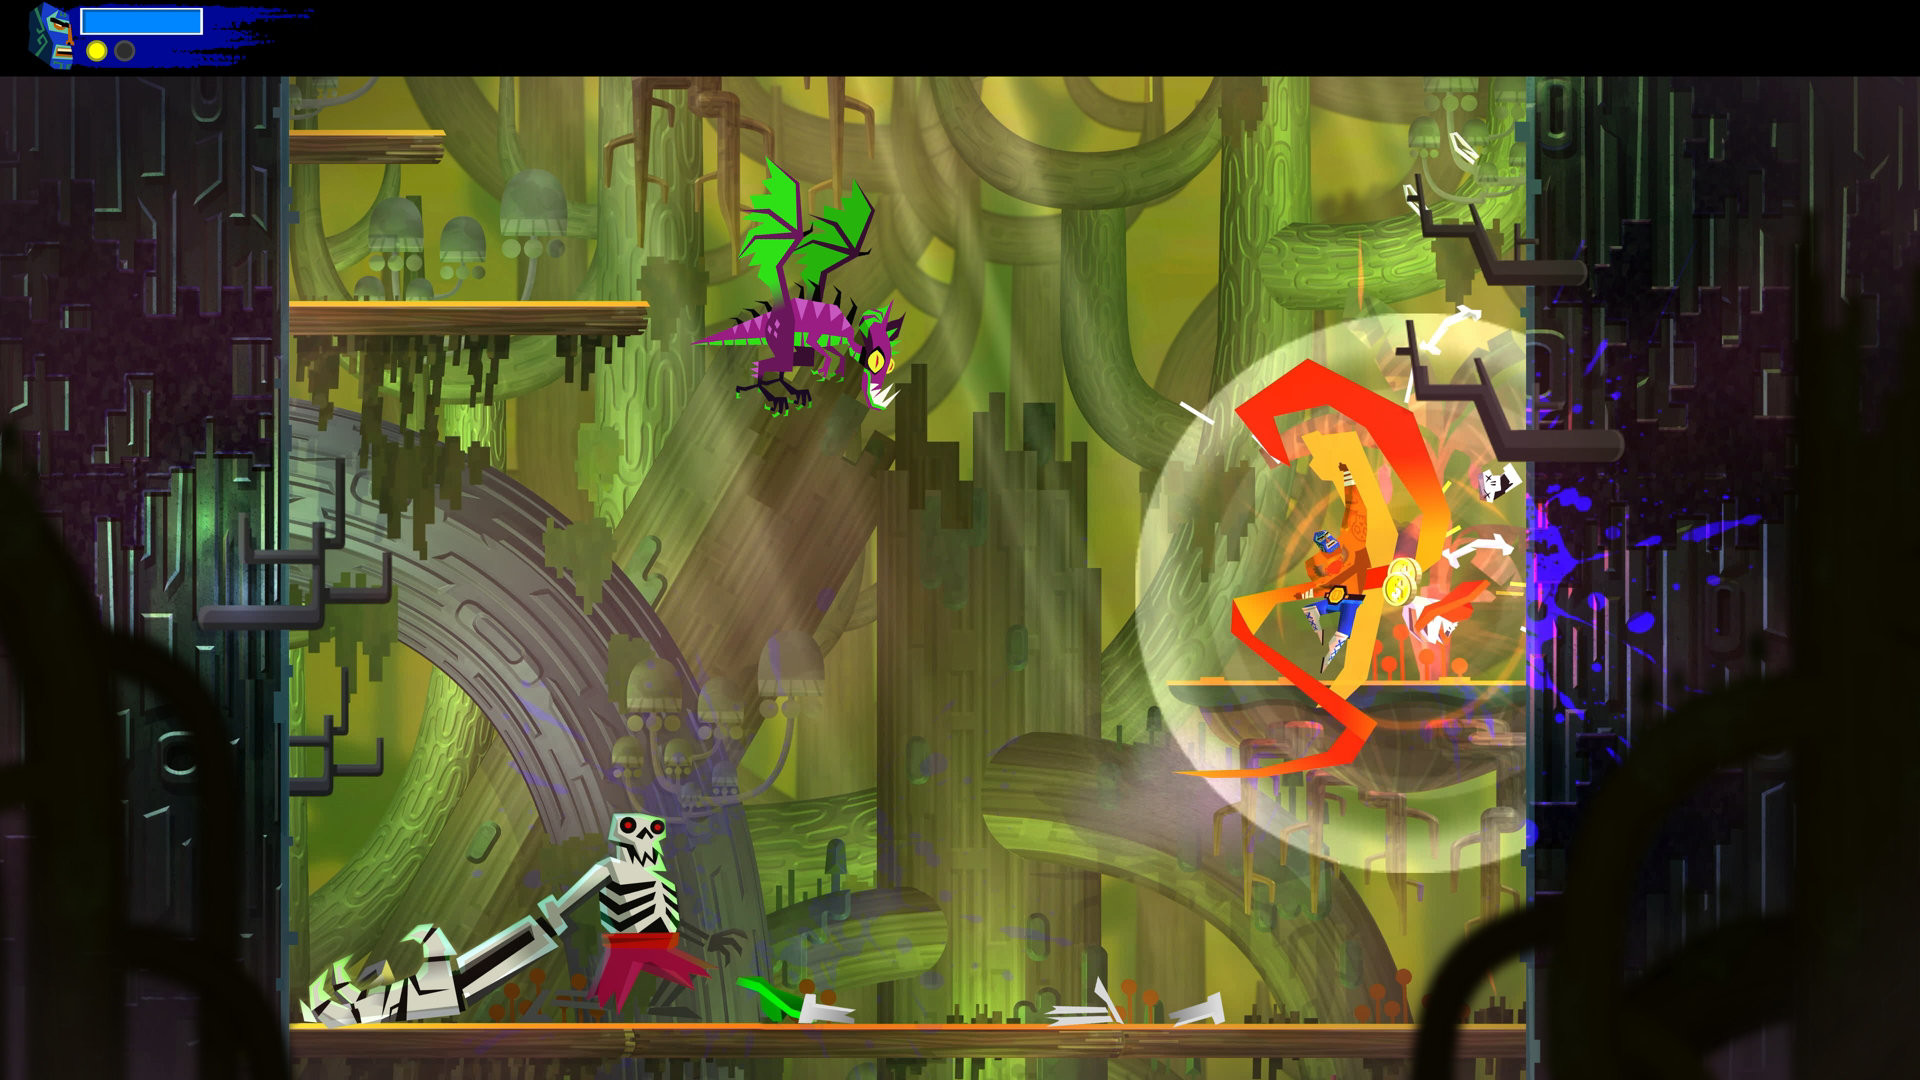 guacamelee-2-screen-02-ps4-eu-05dec17